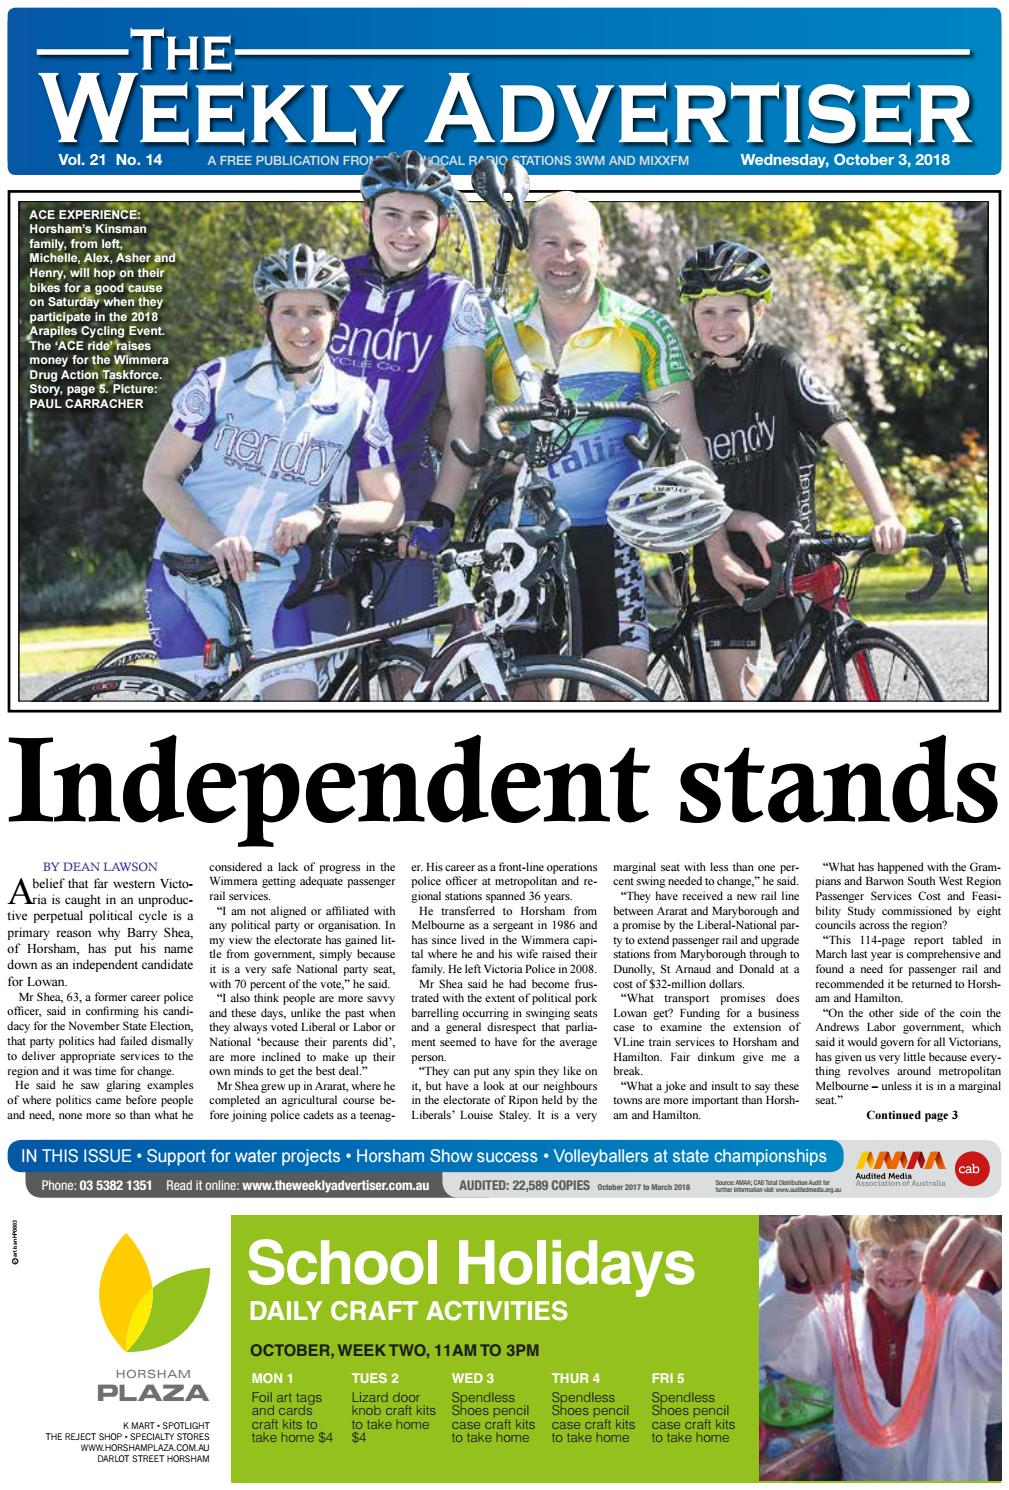 2cd5671d1f1a The Weekly Advertiser - Wednesday